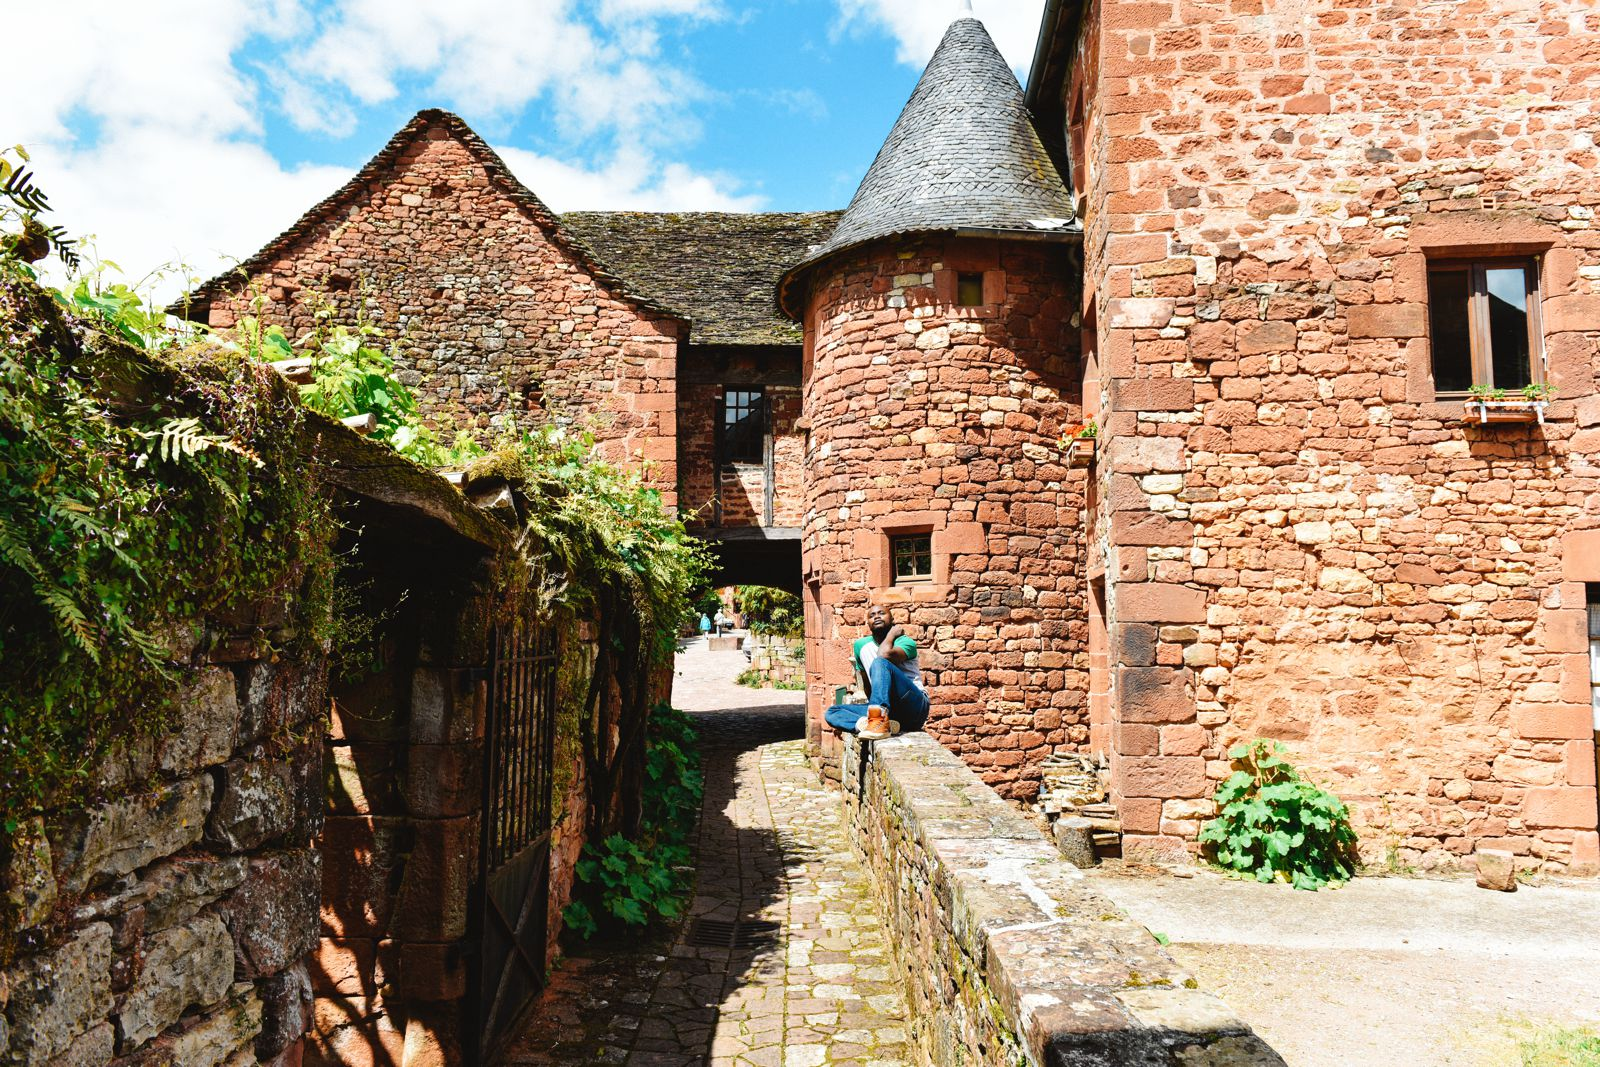 This Is The Most Beautiful Village In France - Collonges-La-Rouge (69)